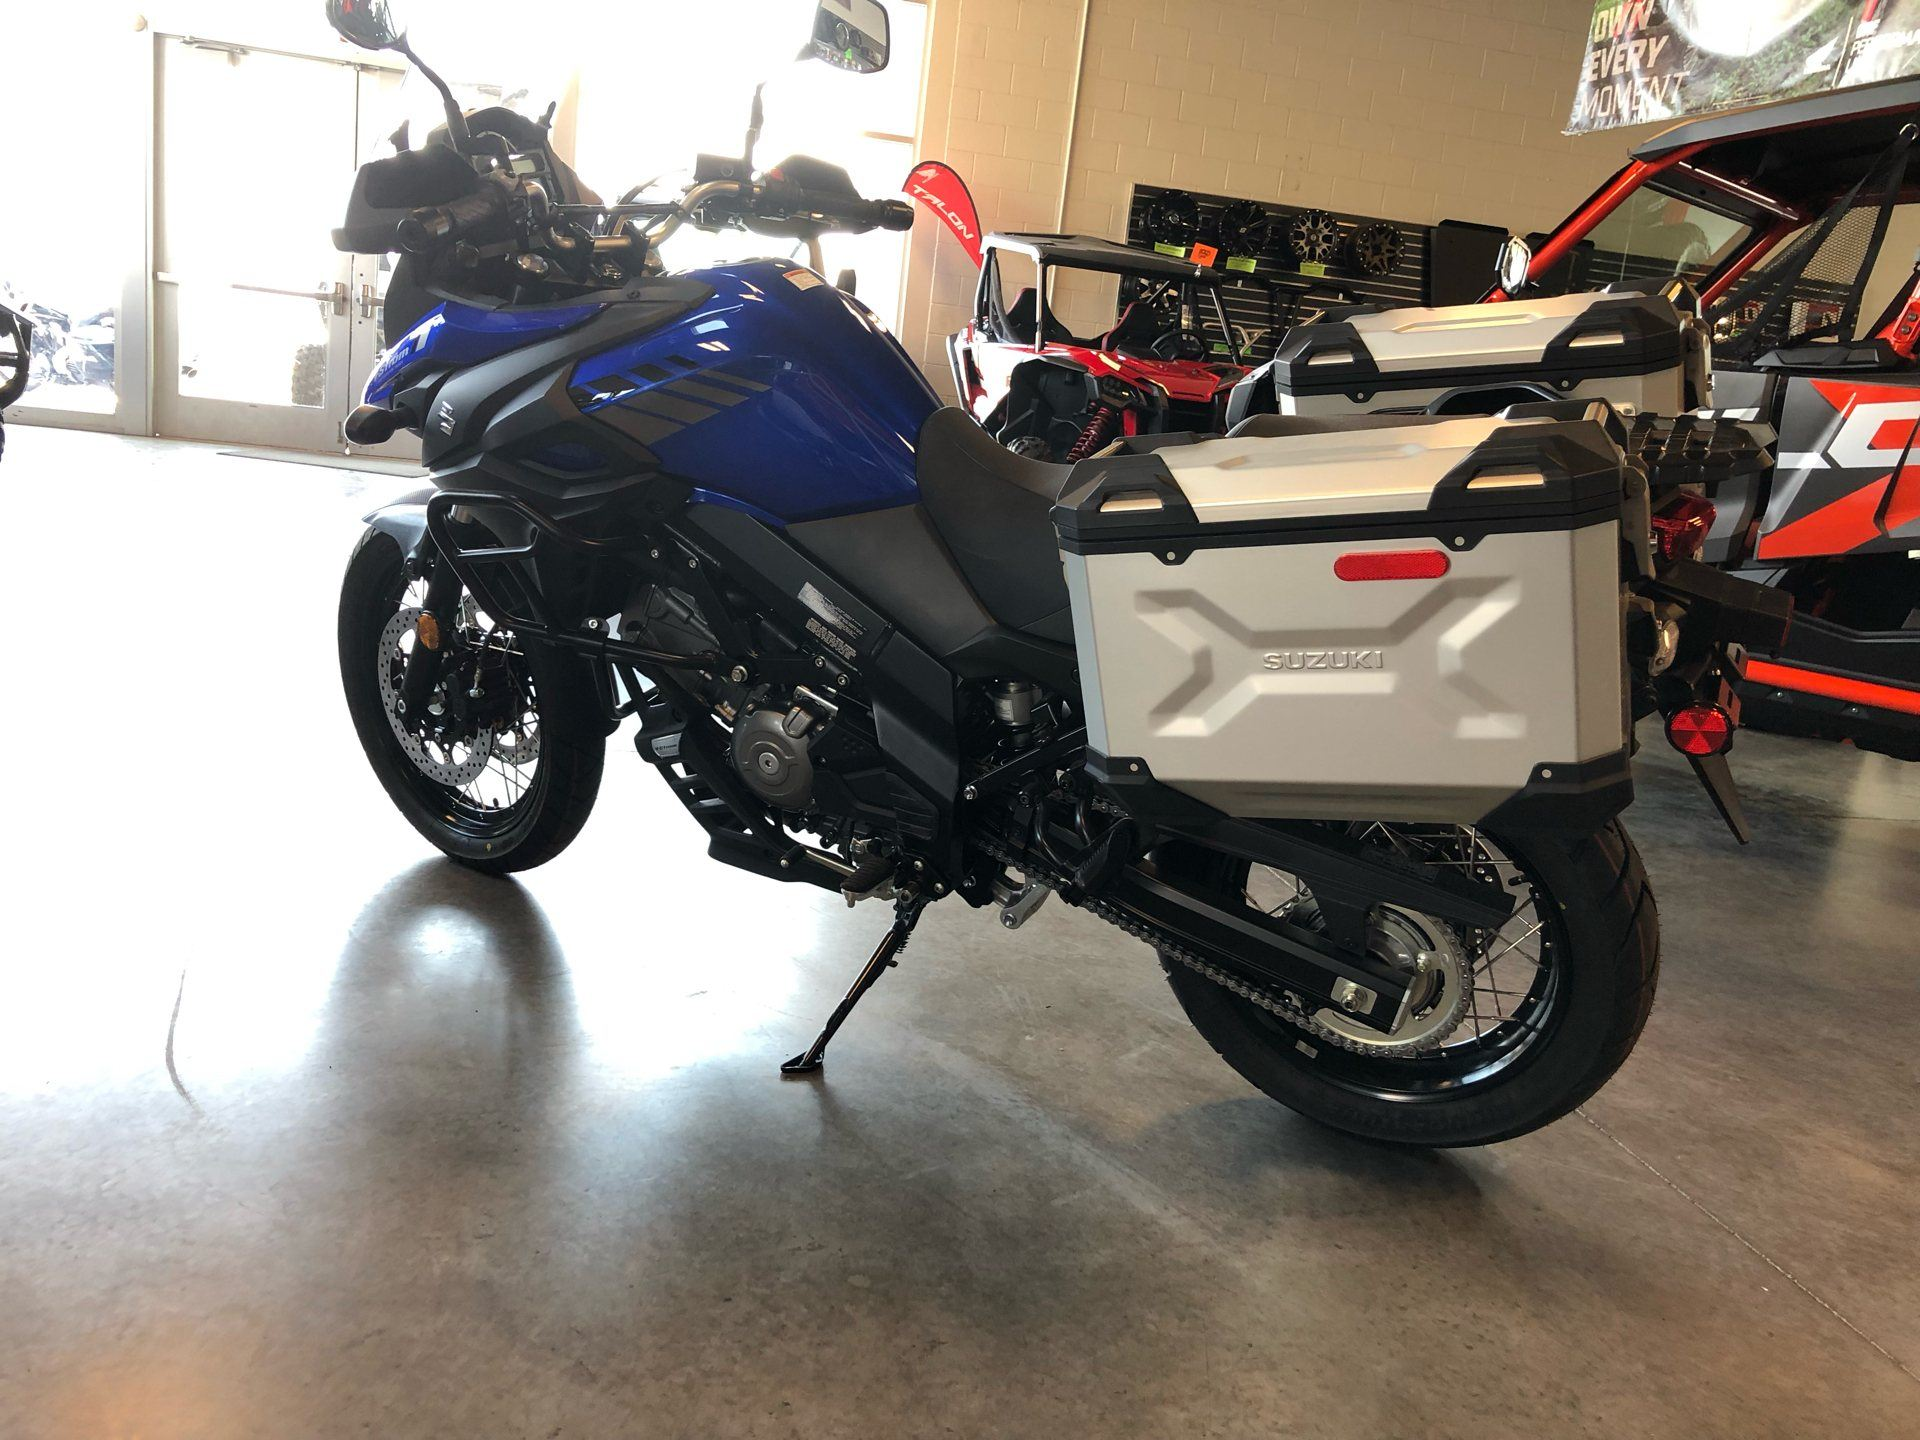 2020 Suzuki V-Strom 650XT Adventure in Saint George, Utah - Photo 3